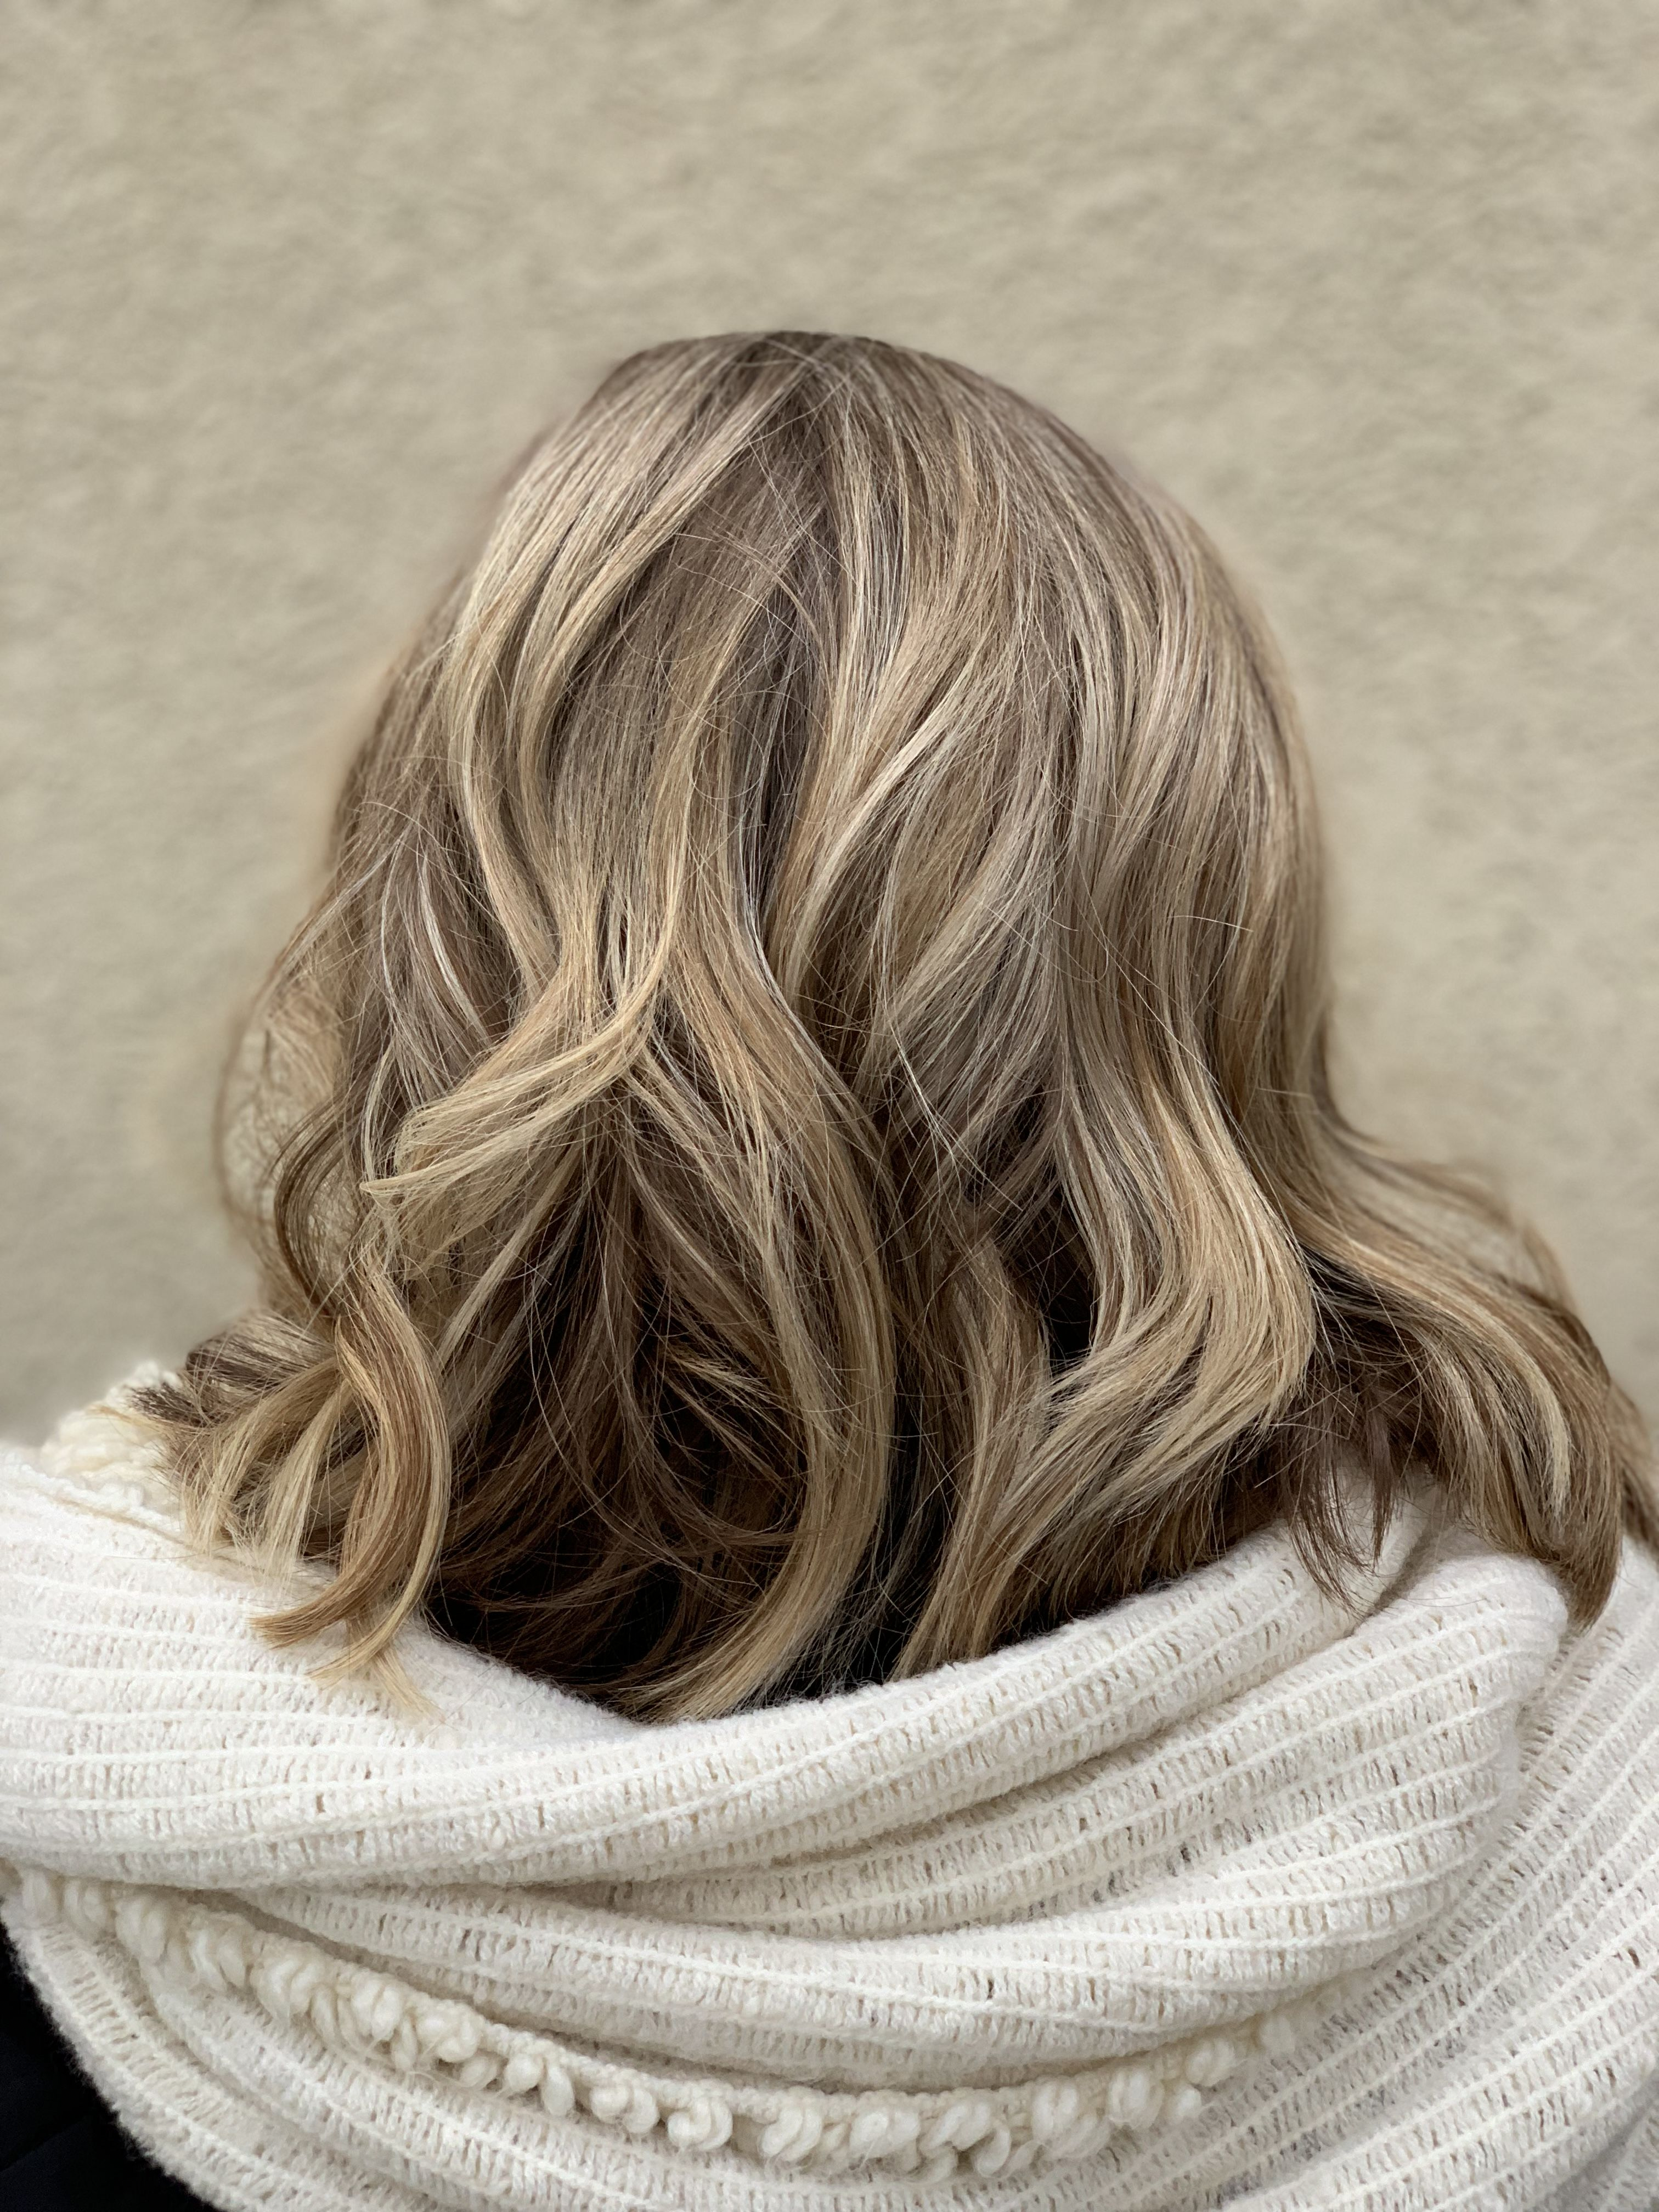 Pin By Hair The Wright Way On Hair The Wright Way Long Hair Styles Hair Salon Hair Styles